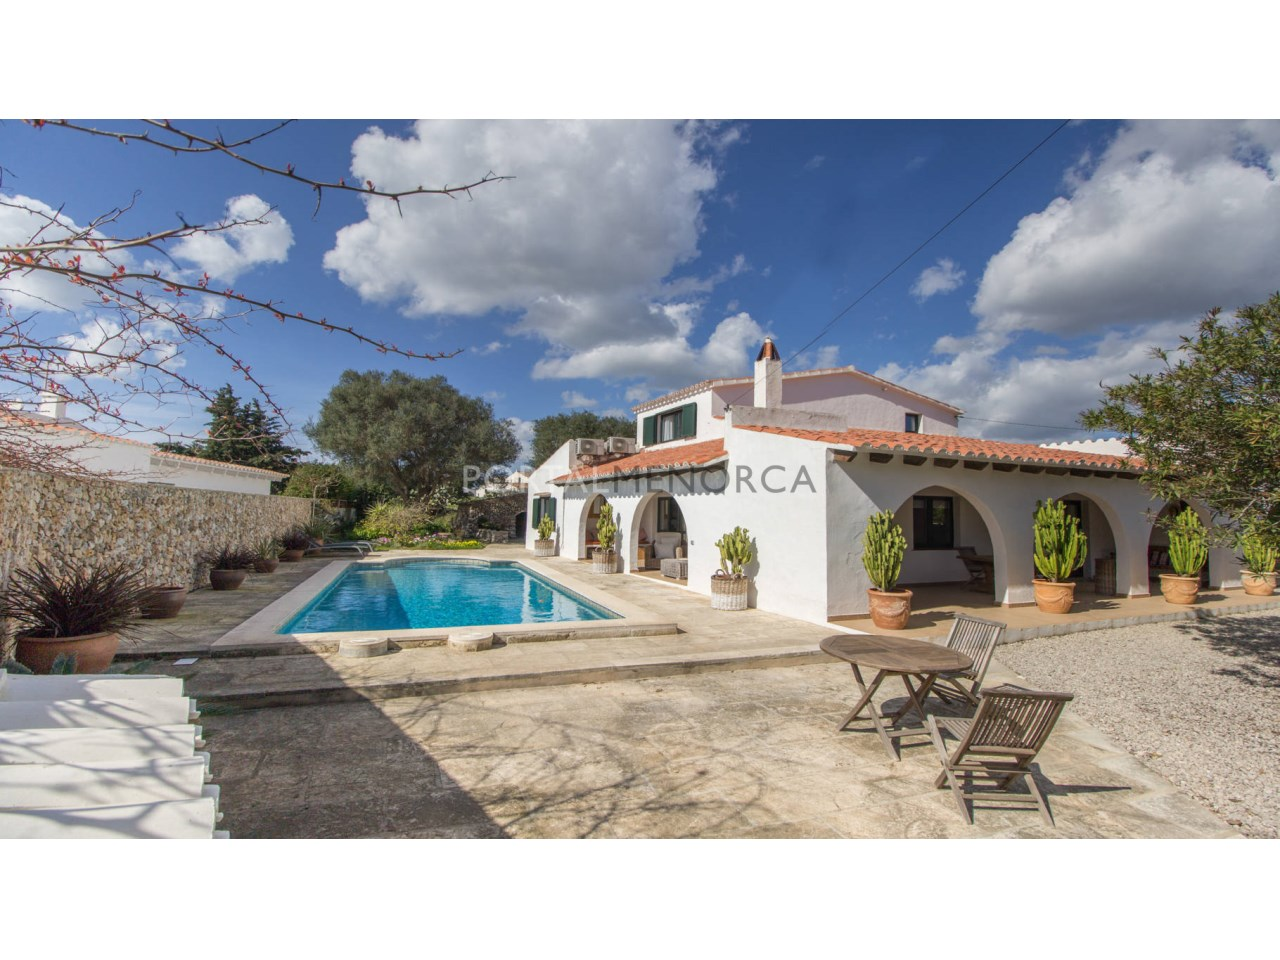 Villa with pool and 4 bedrooms for sale in Trebaluger